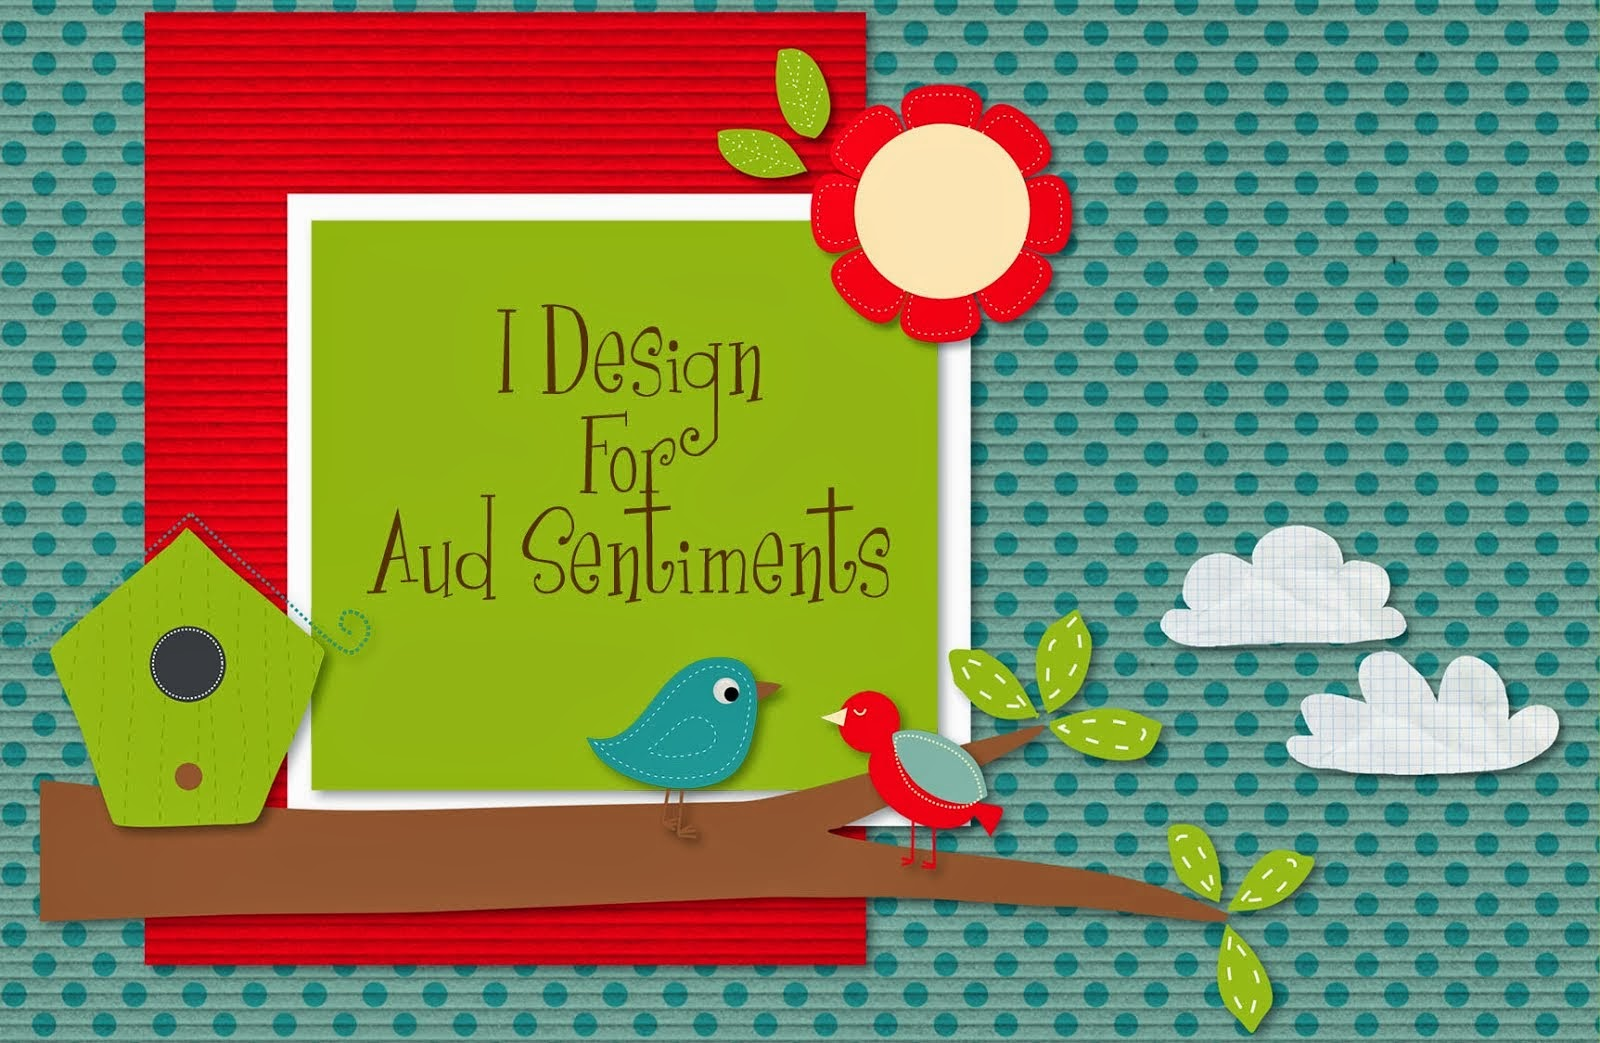 I design for Aud Sentiments